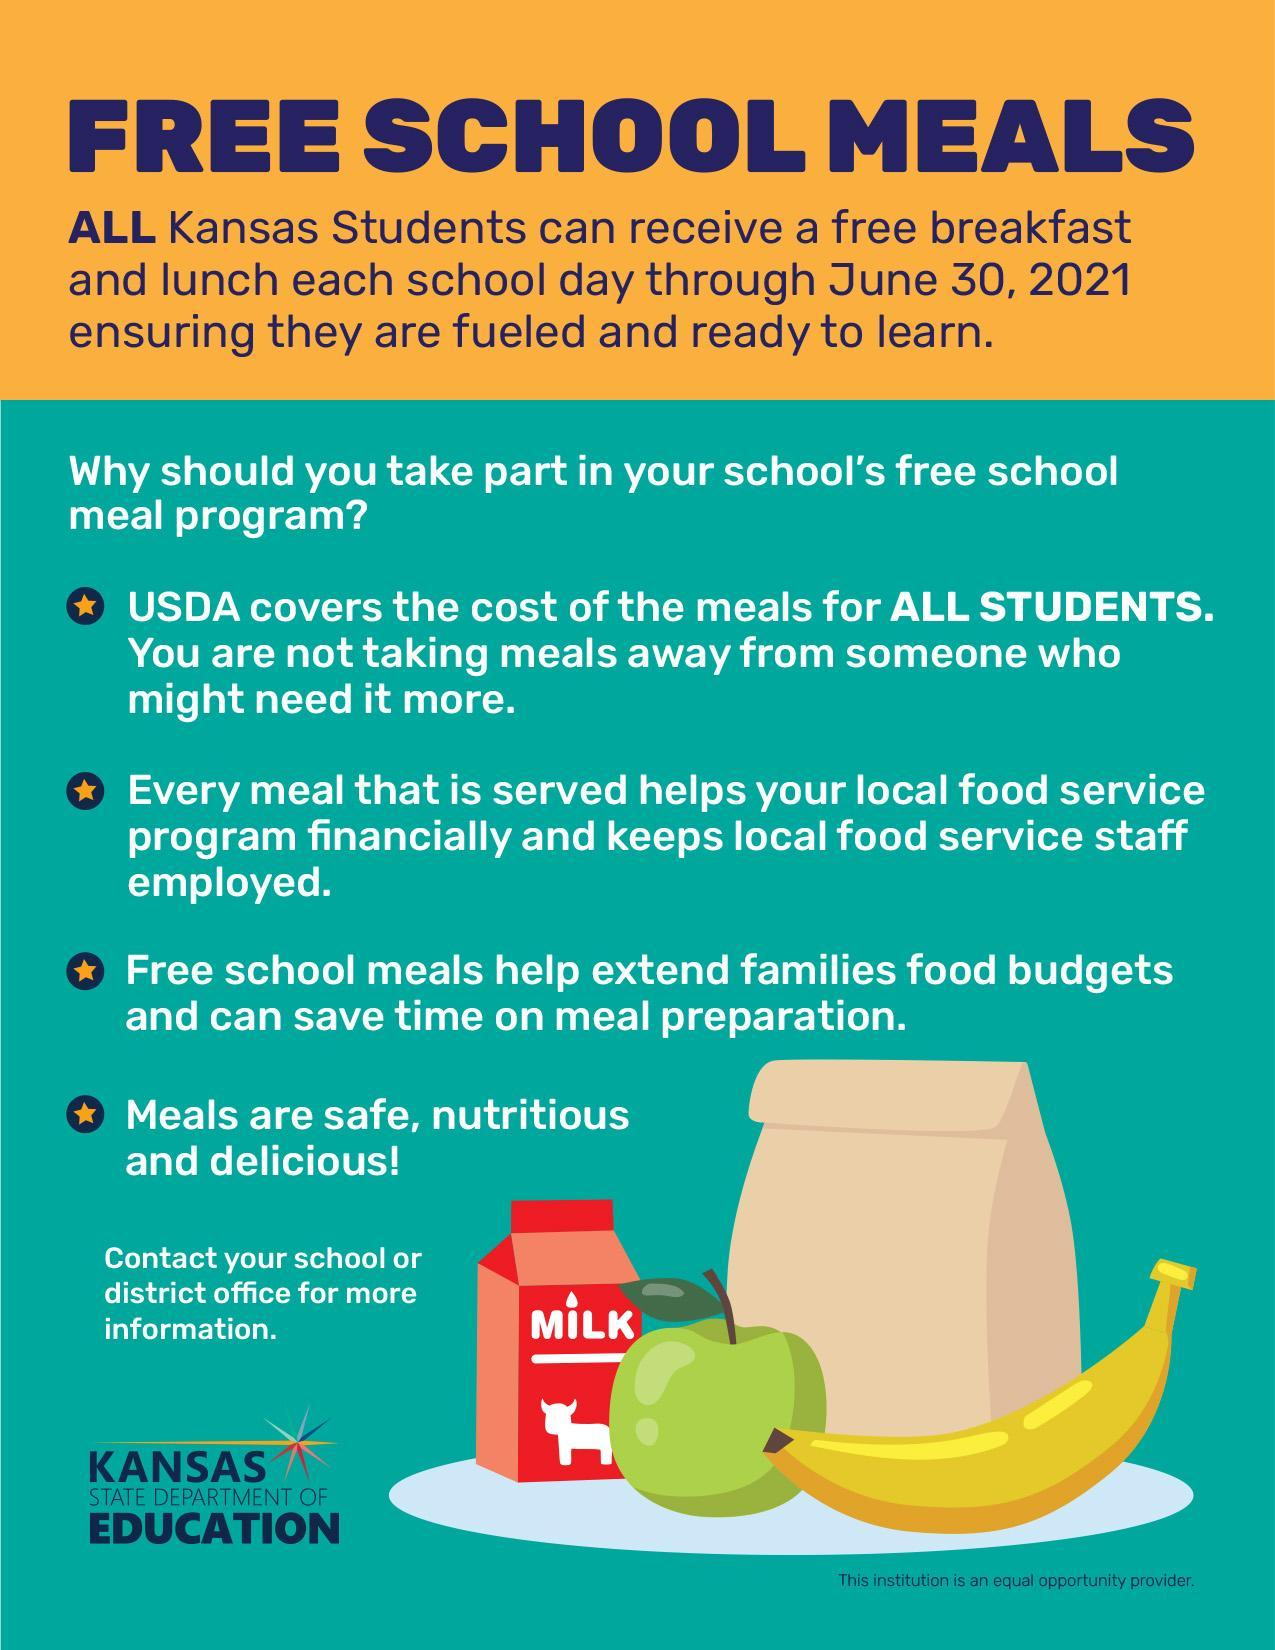 USDA FREE SCHOOL MEALS thru JUNE 2021